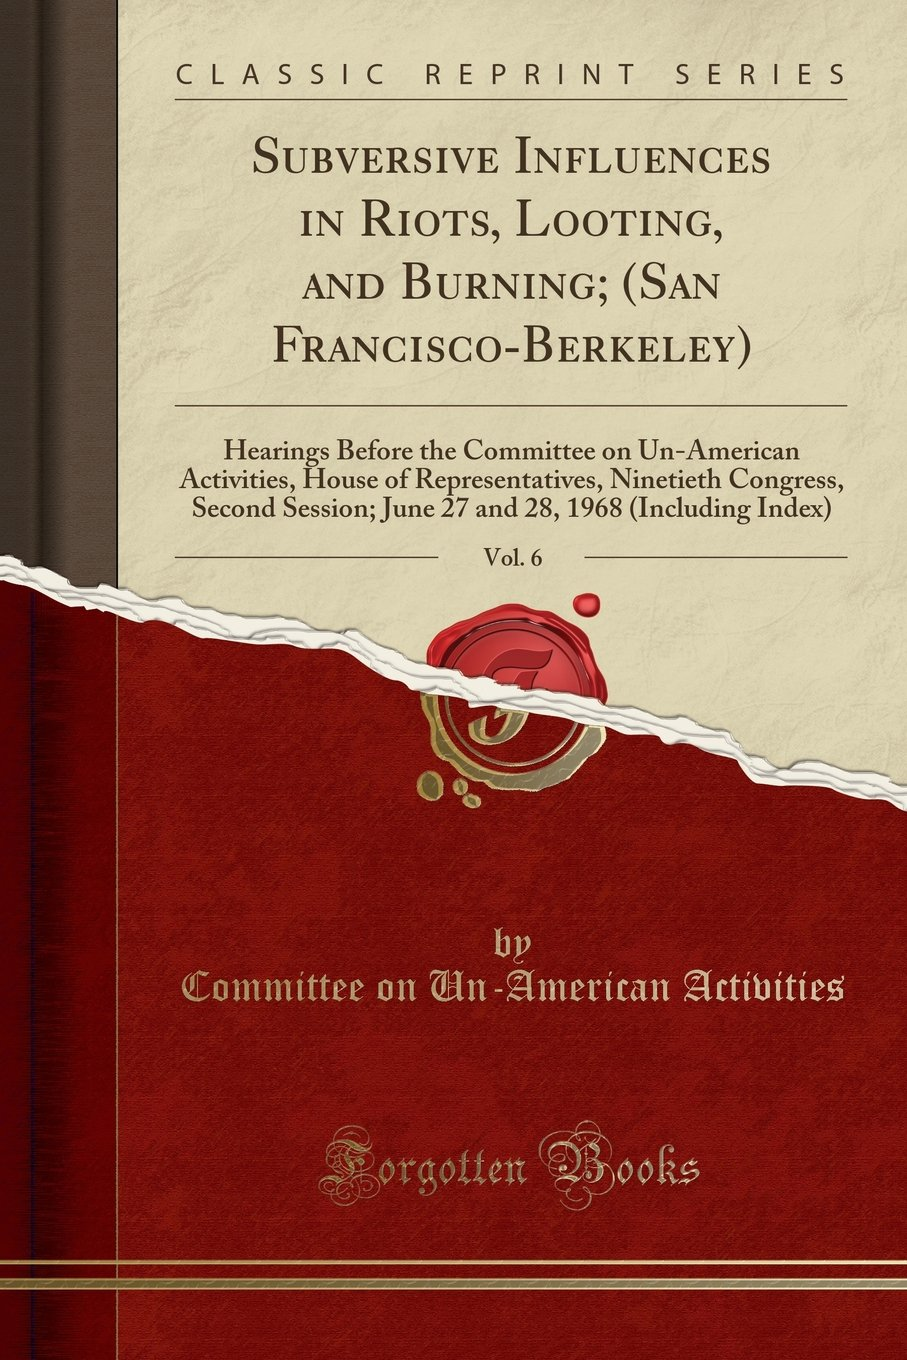 Download Subversive Influences in Riots, Looting, and Burning; (San Francisco-Berkeley), Vol. 6: Hearings Before the Committee on Un-American Activities, House ... June 27 and 28, 1968 (Including Index) pdf